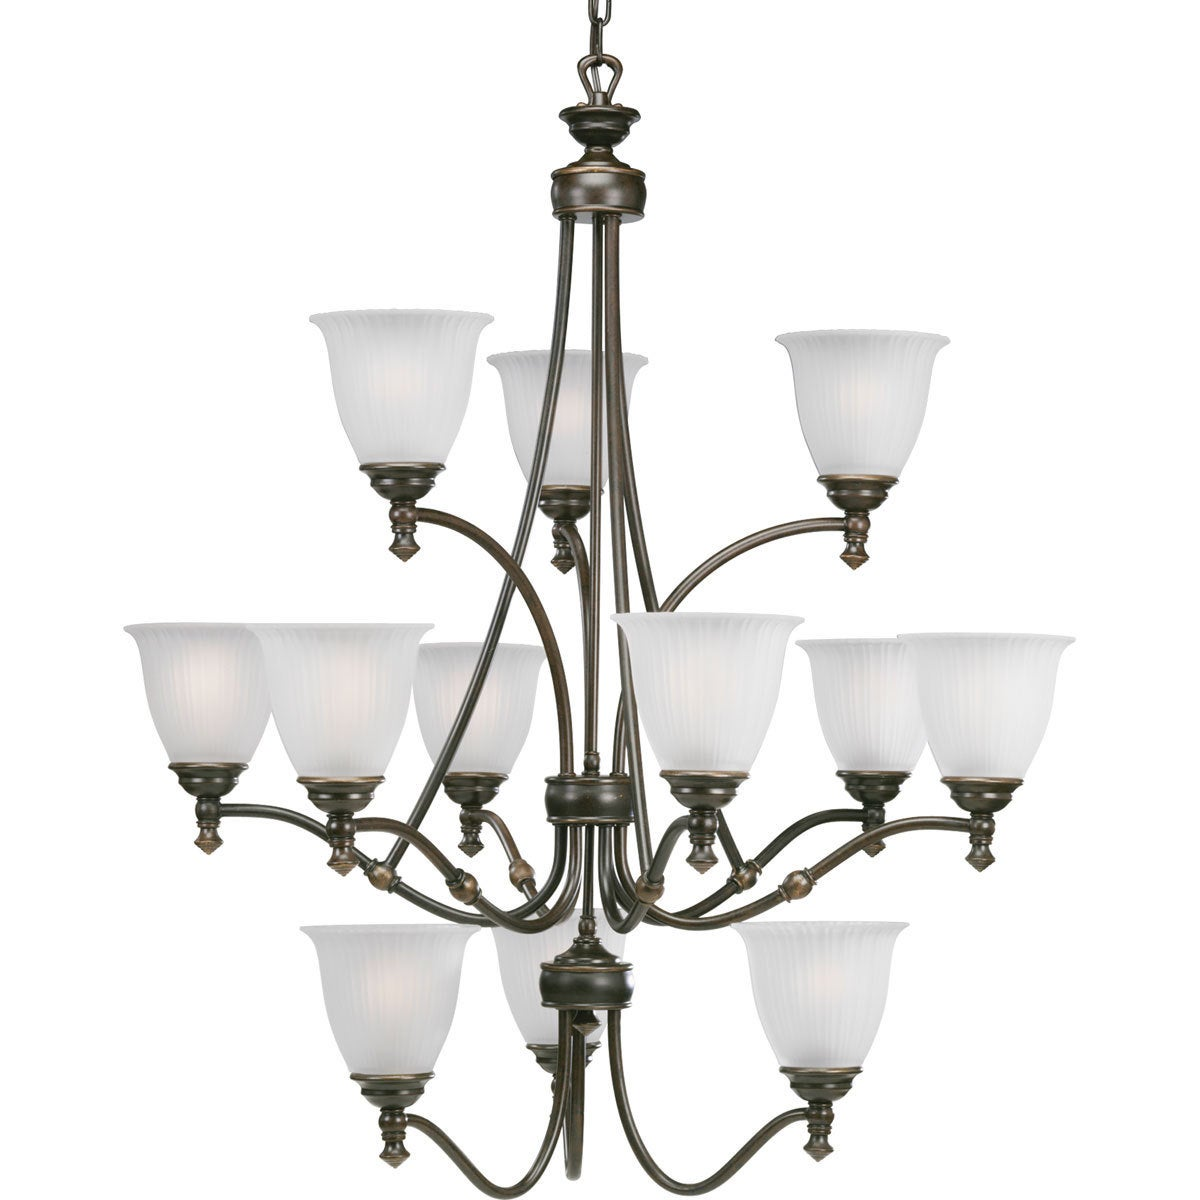 Progress Lighting Renovations Collection 12 Light 3 Tier Forged Bronze Chandelier Fixture Free Shipping Today 9367535